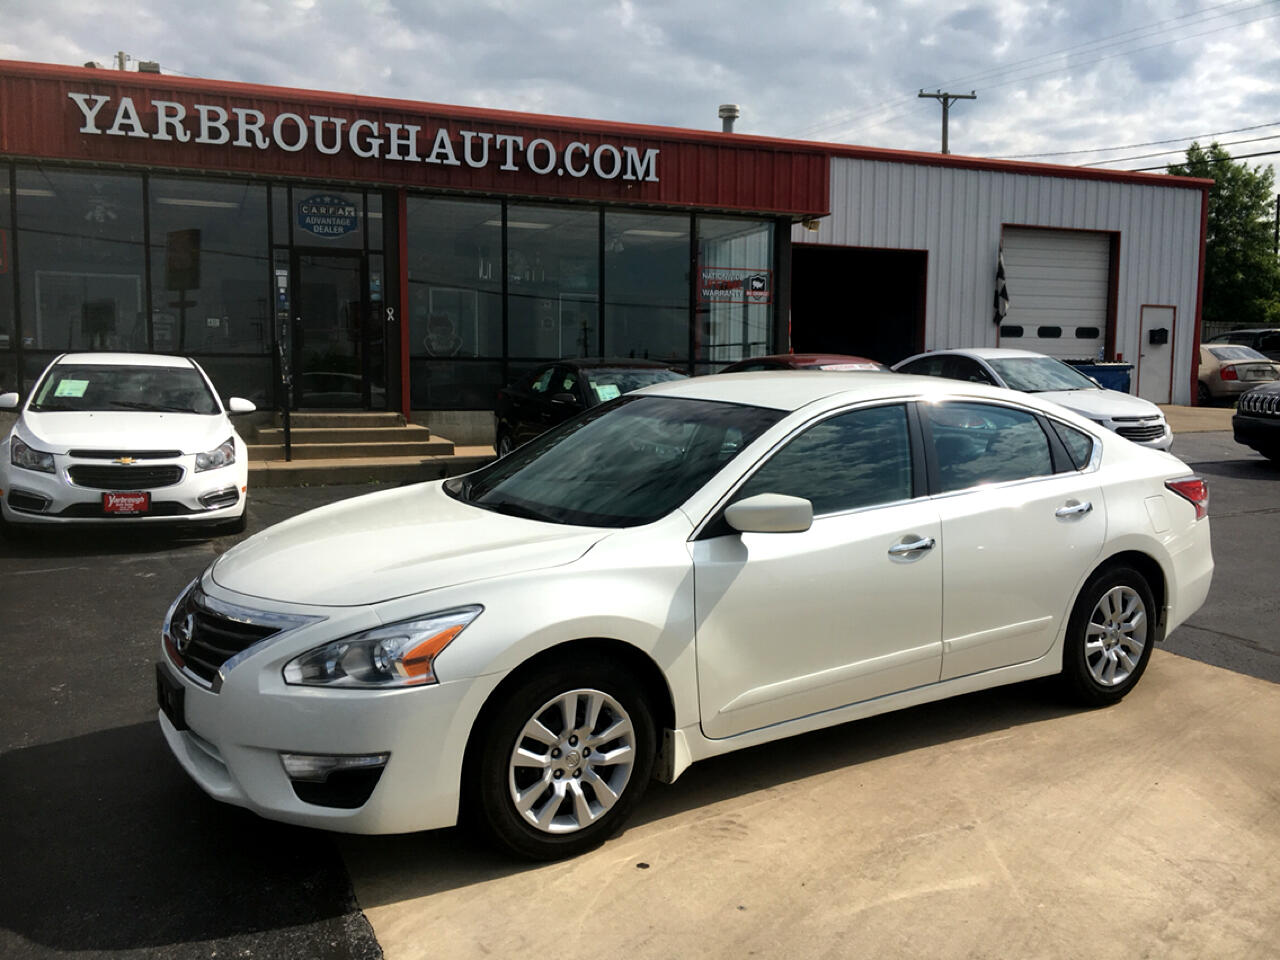 2014 Nissan Altima 4dr Sdn I4 2.5 S